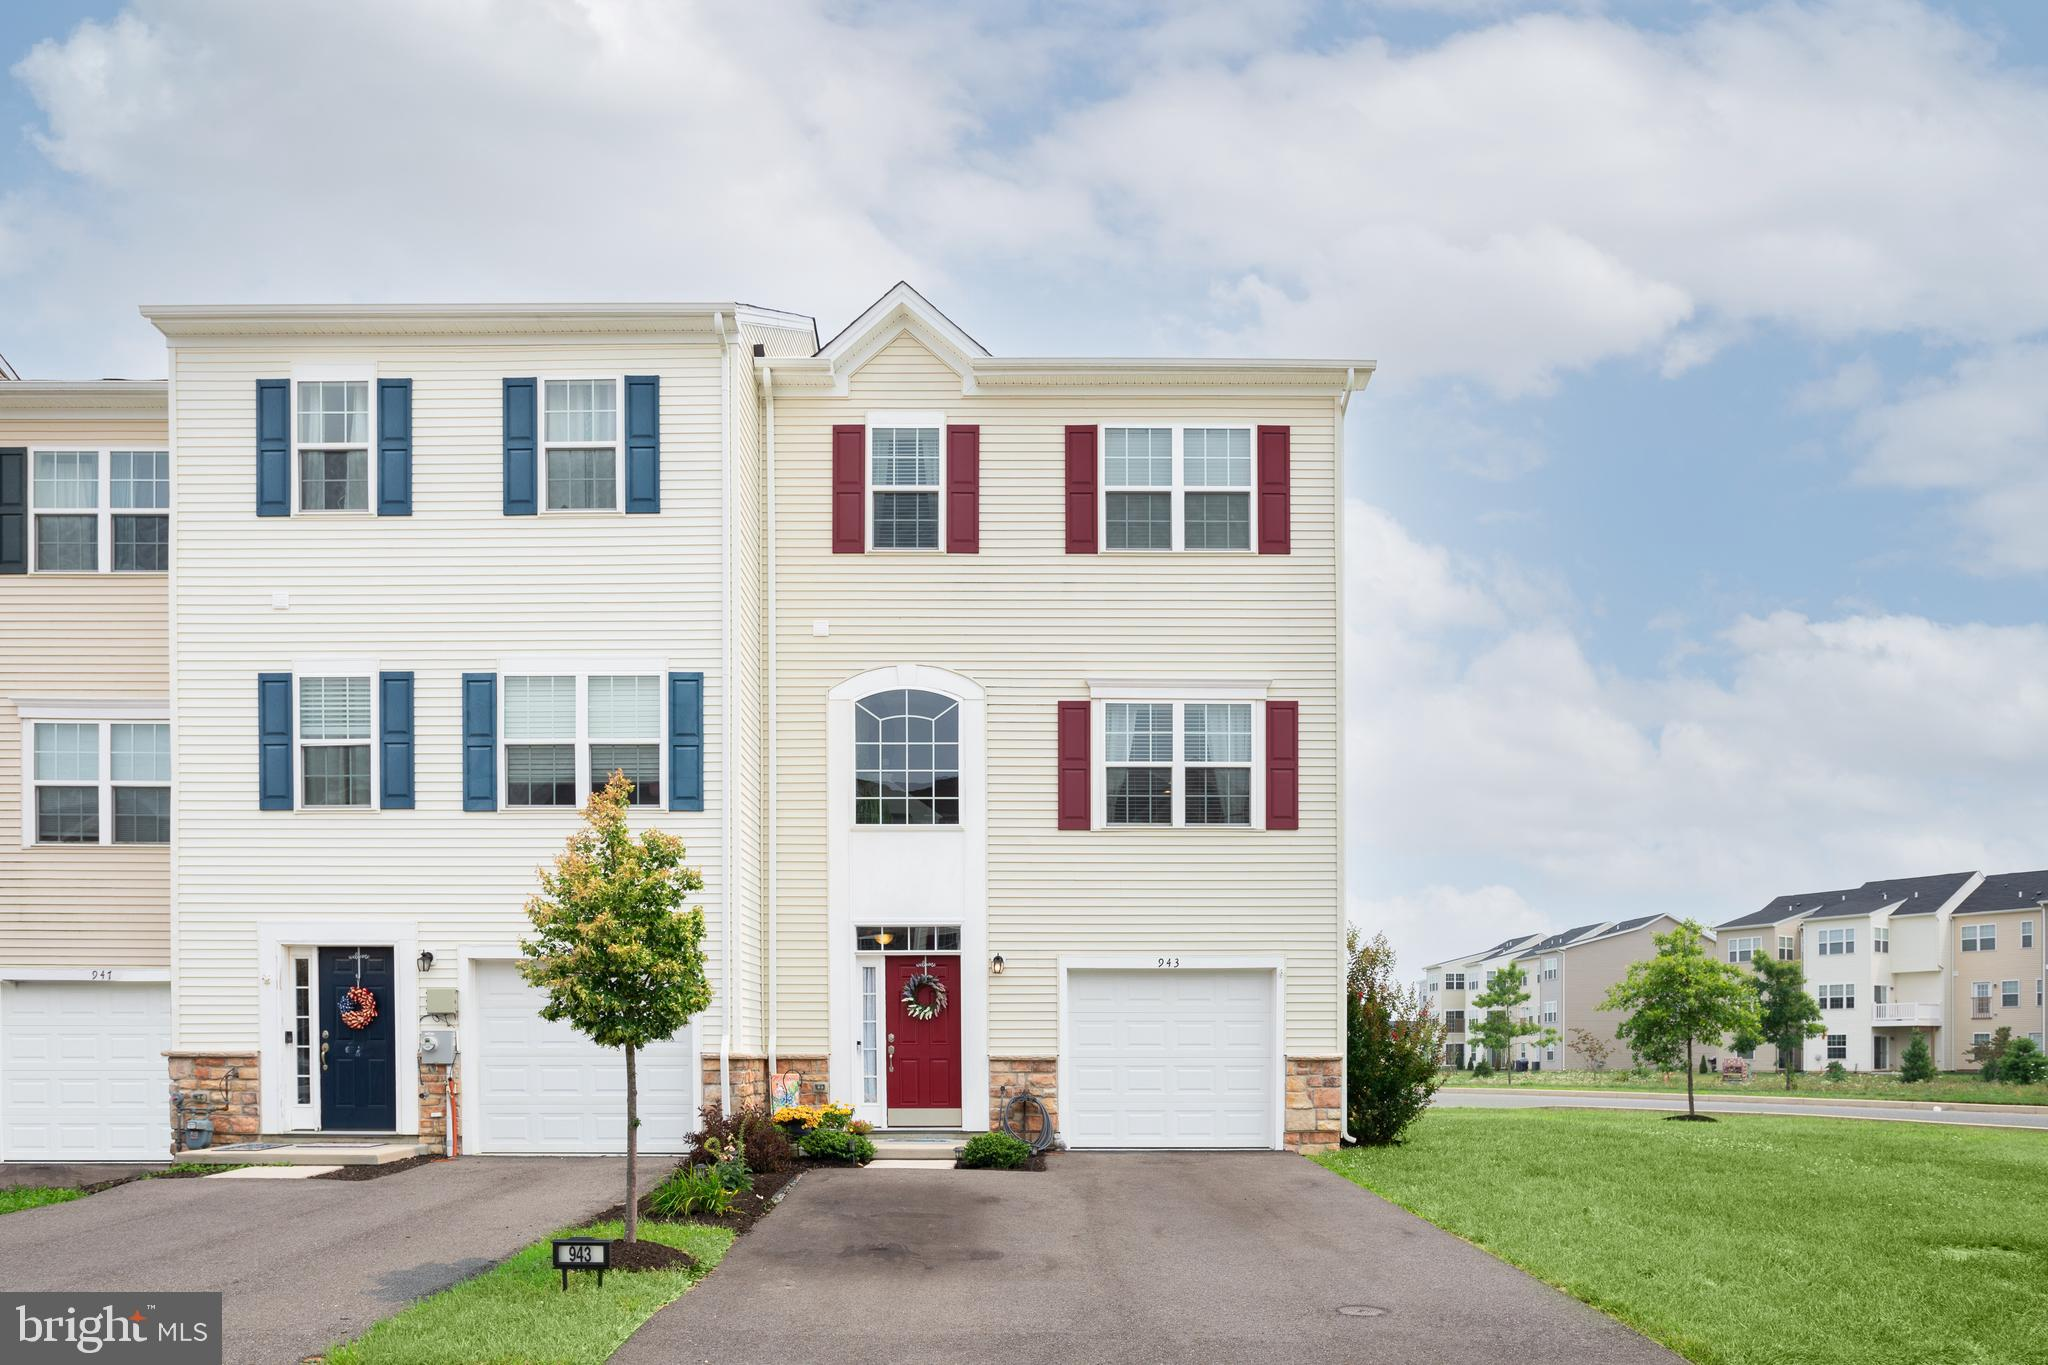 """Why wait for new construction when you can move right in to this spacious, end unit townhome in Hyetts Crossing. Pride of ownership shows from the moment you enter, with an inviting entryway that  leads to a main level bedroom room or additional rec/family room. Open floor plan, perfect for entertaining, with family room flowing into eat in kitchen with 42"""" white cabinets, granite countertops, marble herringbone pattern backsplash, stainless appliances and large island for additional seating. Kitchen features sliding door that leads to the new, spacious composite deck with vinyl railings. Upper level offers owners suite with private bath with dual vanity walk-in closet, two additional bedrooms, hall bath and upper level laundry. Endless upgrades, including new light fixtures, shiplap walls and new composite and vinyl deck. Conveniently located to commuting routes, shopping and restaurants in Middletown and Newark."""